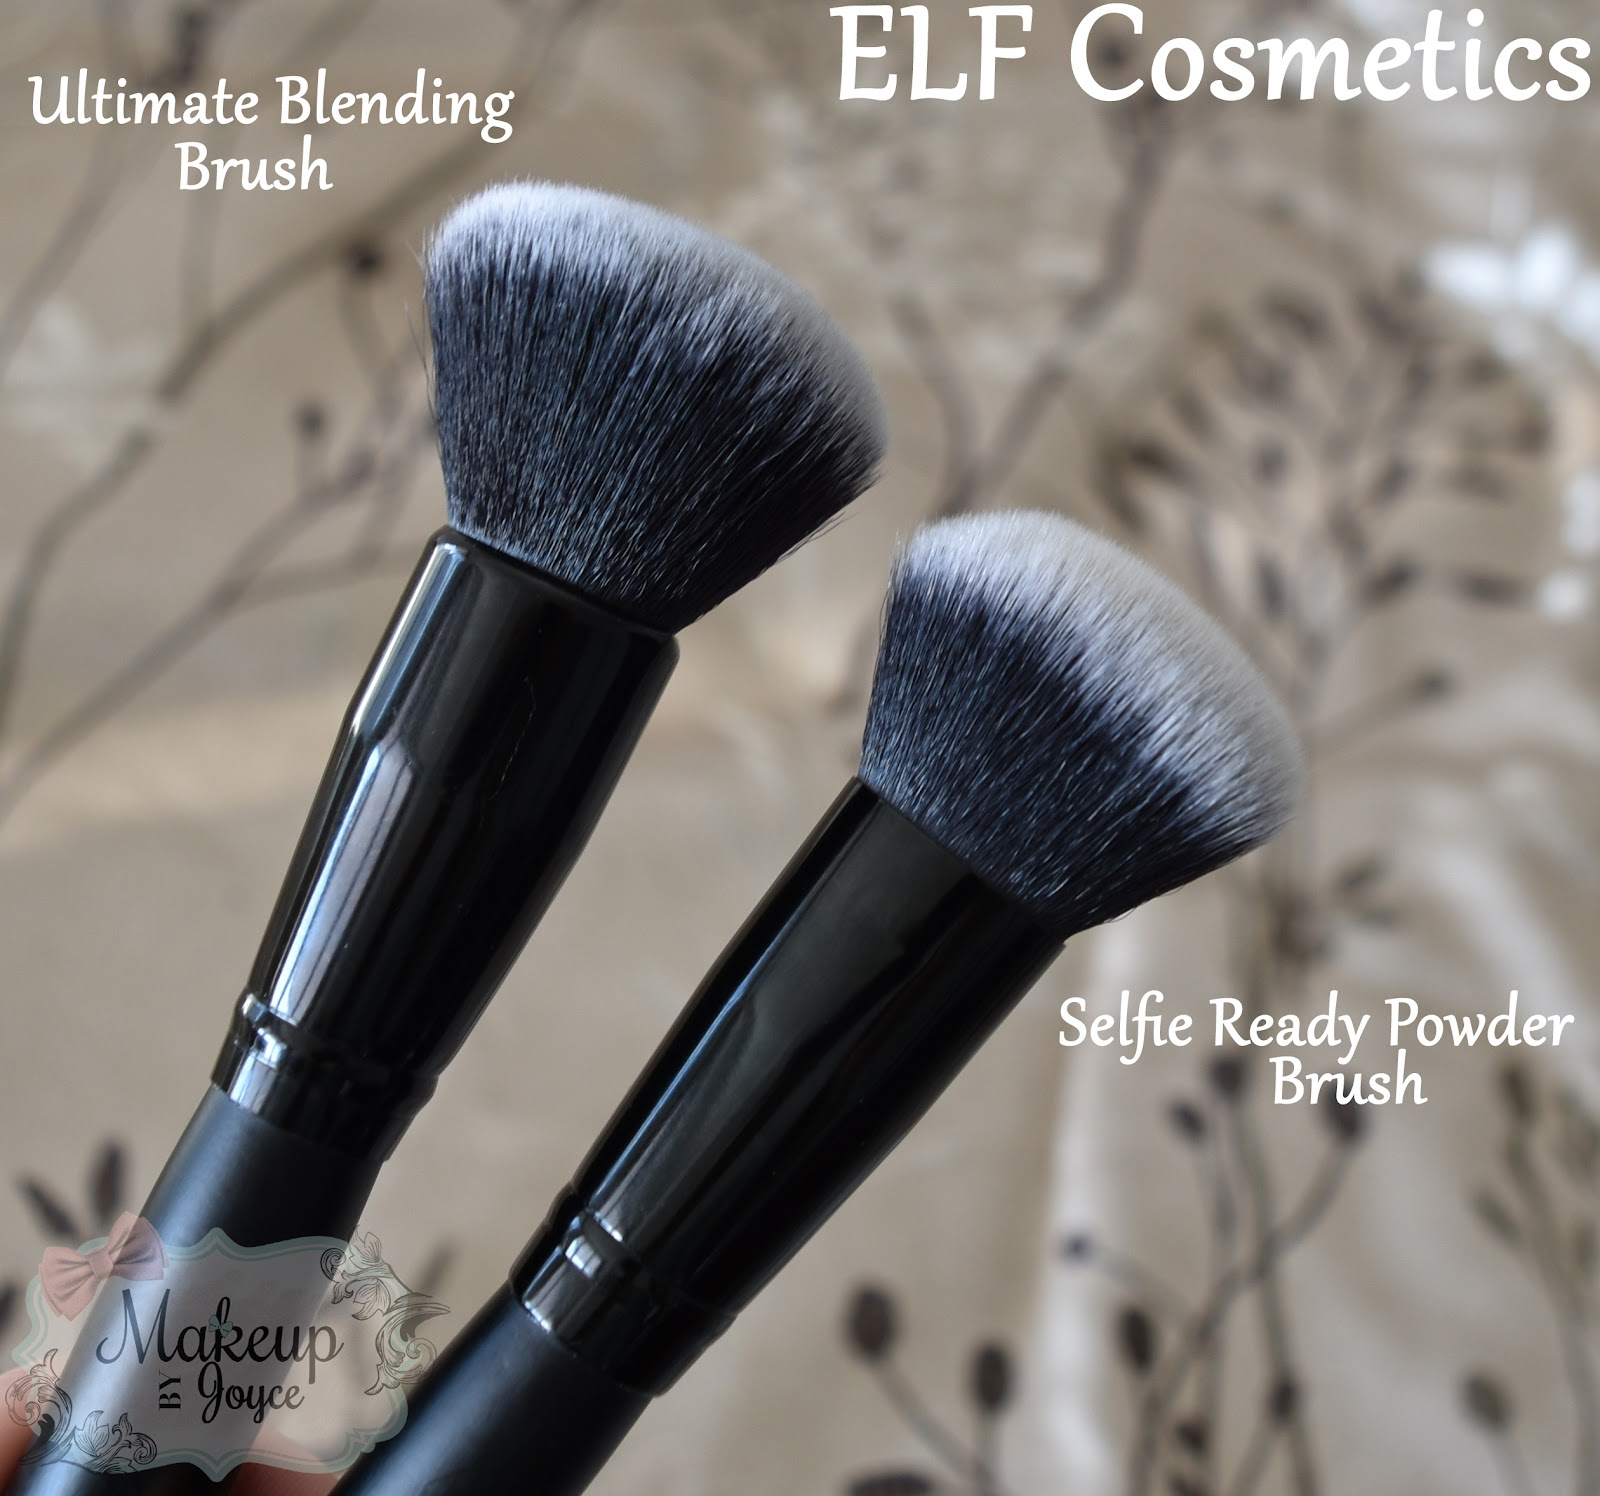 ❤ MakeupByJoyce ❤** !: Review: ELF Cosmetics Selfie Ready and the ...